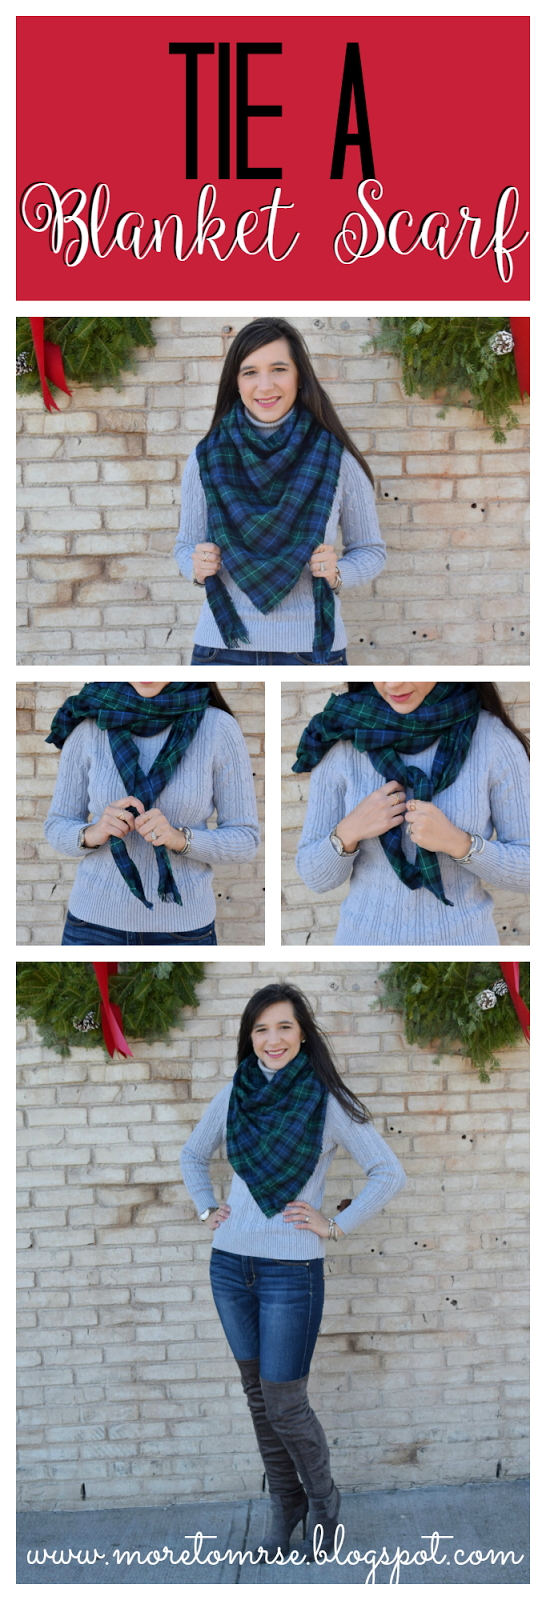 How to Tie a Winter Scarf (Part 2 Square Blanket Scarf!)